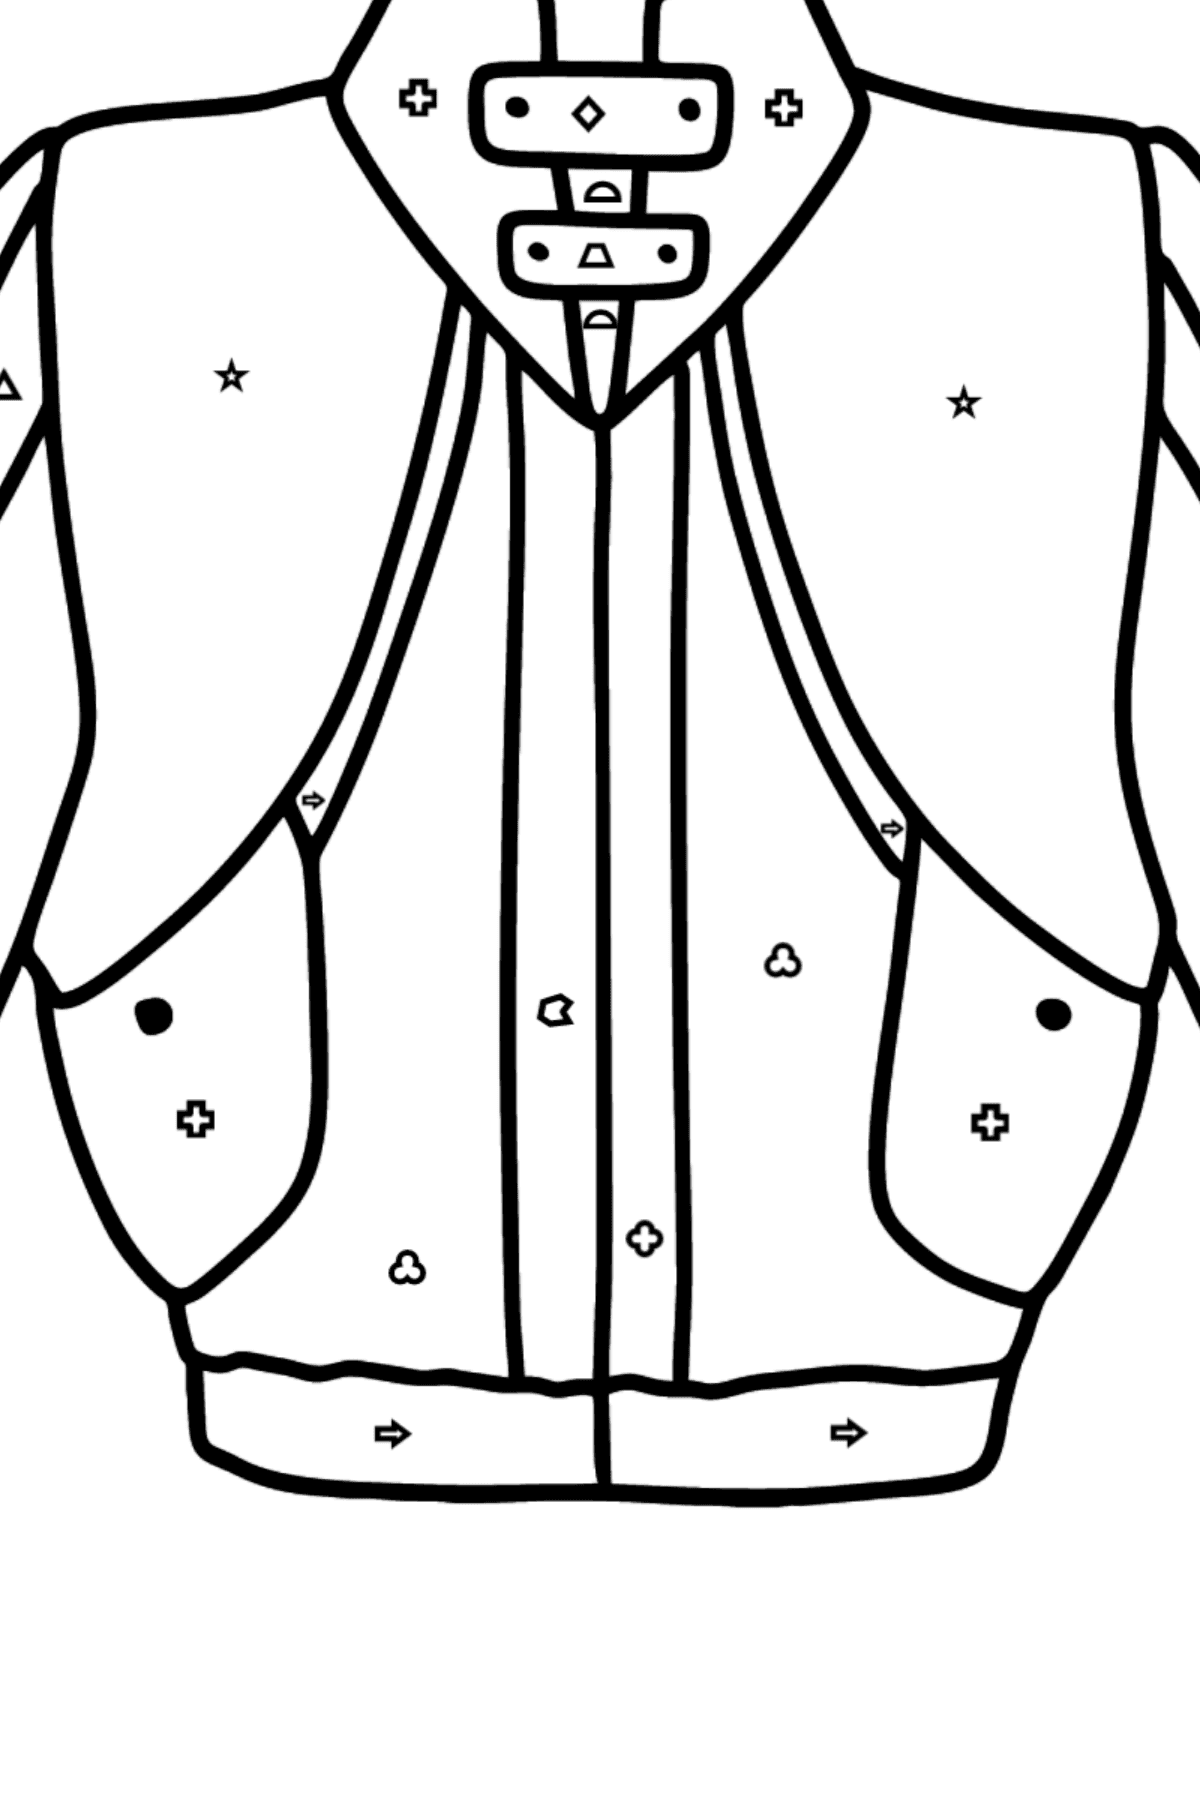 Jacket coloring page - Coloring by Geometric Shapes for Kids